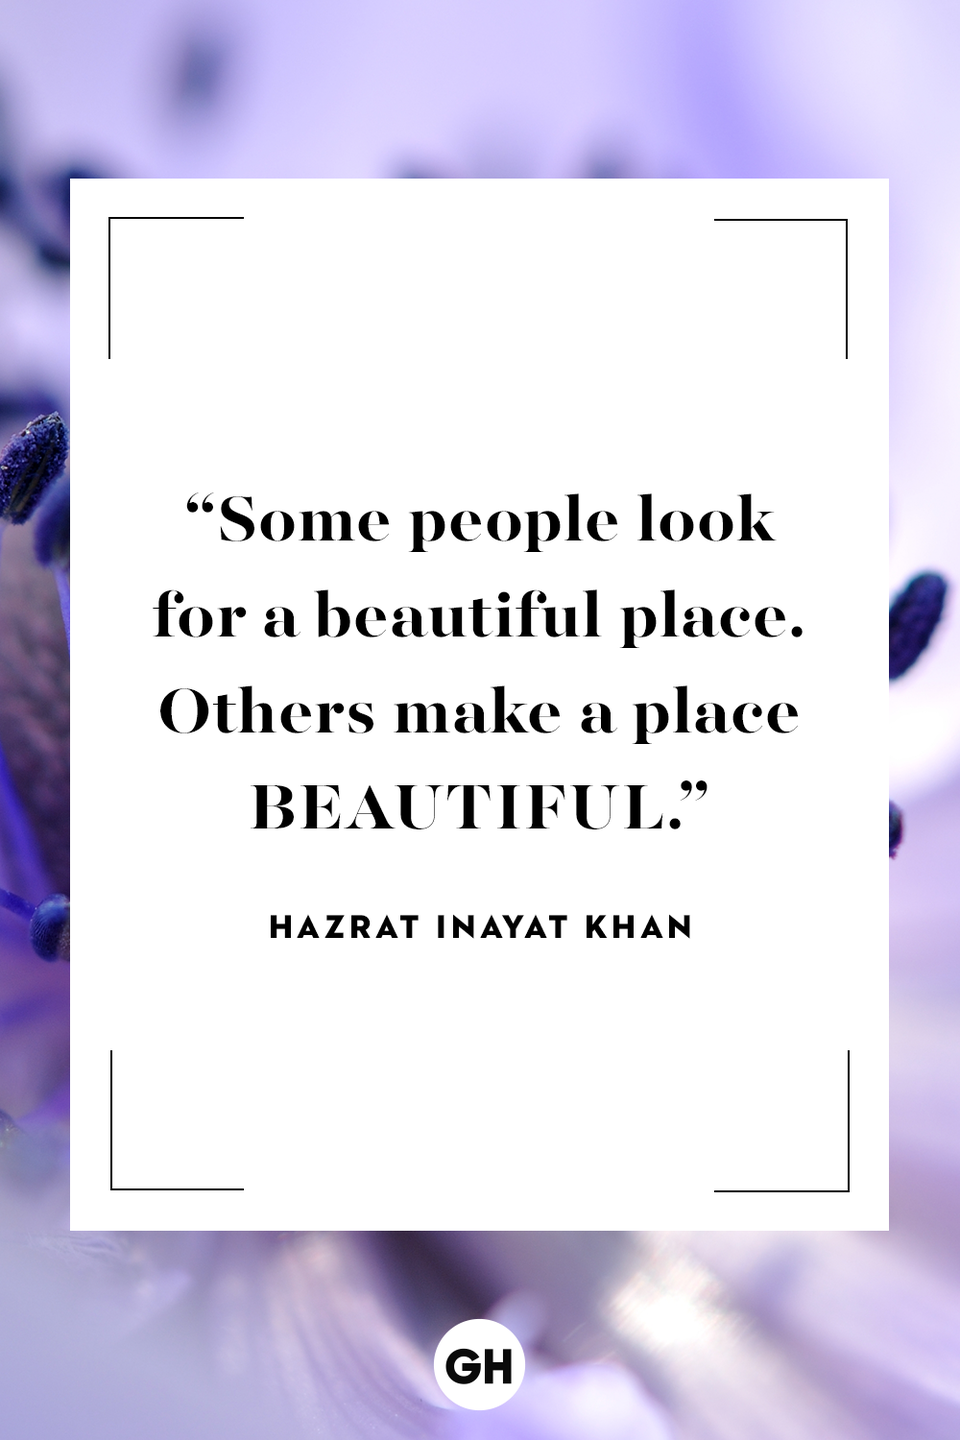 """<p>Some people look for a beautiful place. Others make a place beautiful.</p><p><strong>RELATED: </strong><a href=""""https://www.goodhousekeeping.com/life/g27723963/beach-quotes/"""" rel=""""nofollow noopener"""" target=""""_blank"""" data-ylk=""""slk:Beach Quotes to Instantly Put You at Ease"""" class=""""link rapid-noclick-resp"""">Beach Quotes to Instantly Put You at Ease</a></p>"""